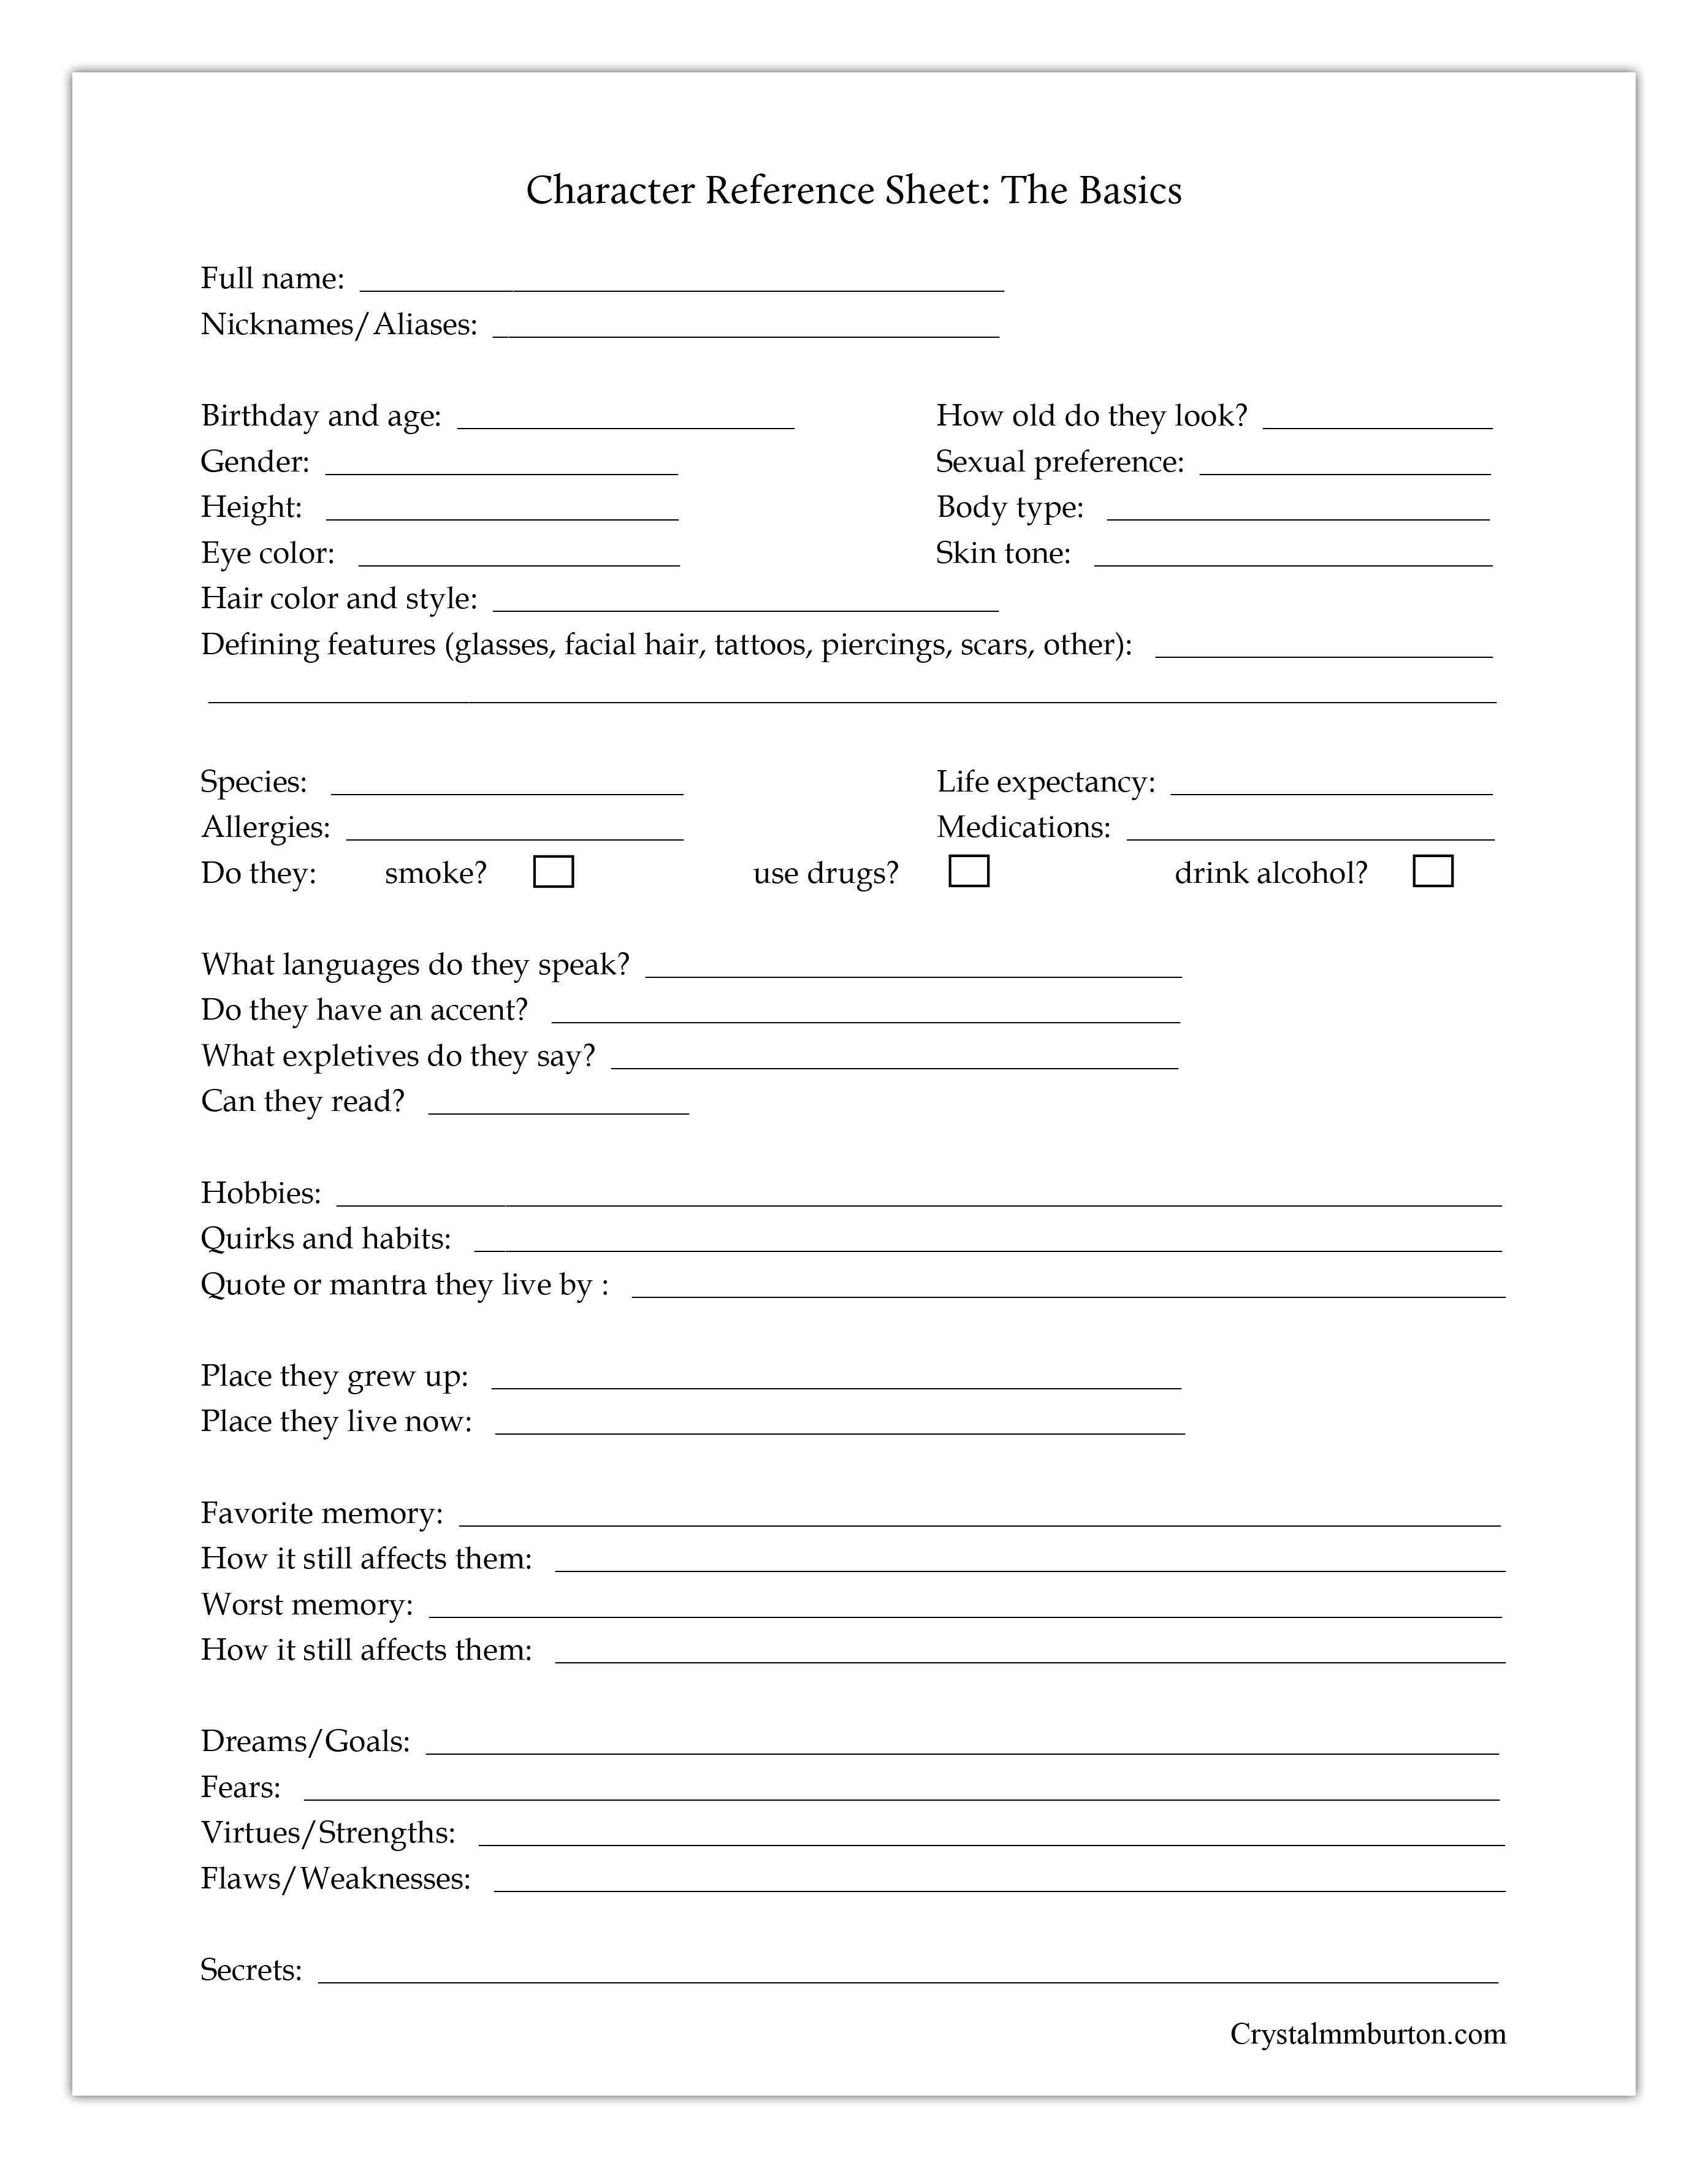 The Basics Character Sheet Writing Writing Tips Writing Inspiration Character worksheets for writers